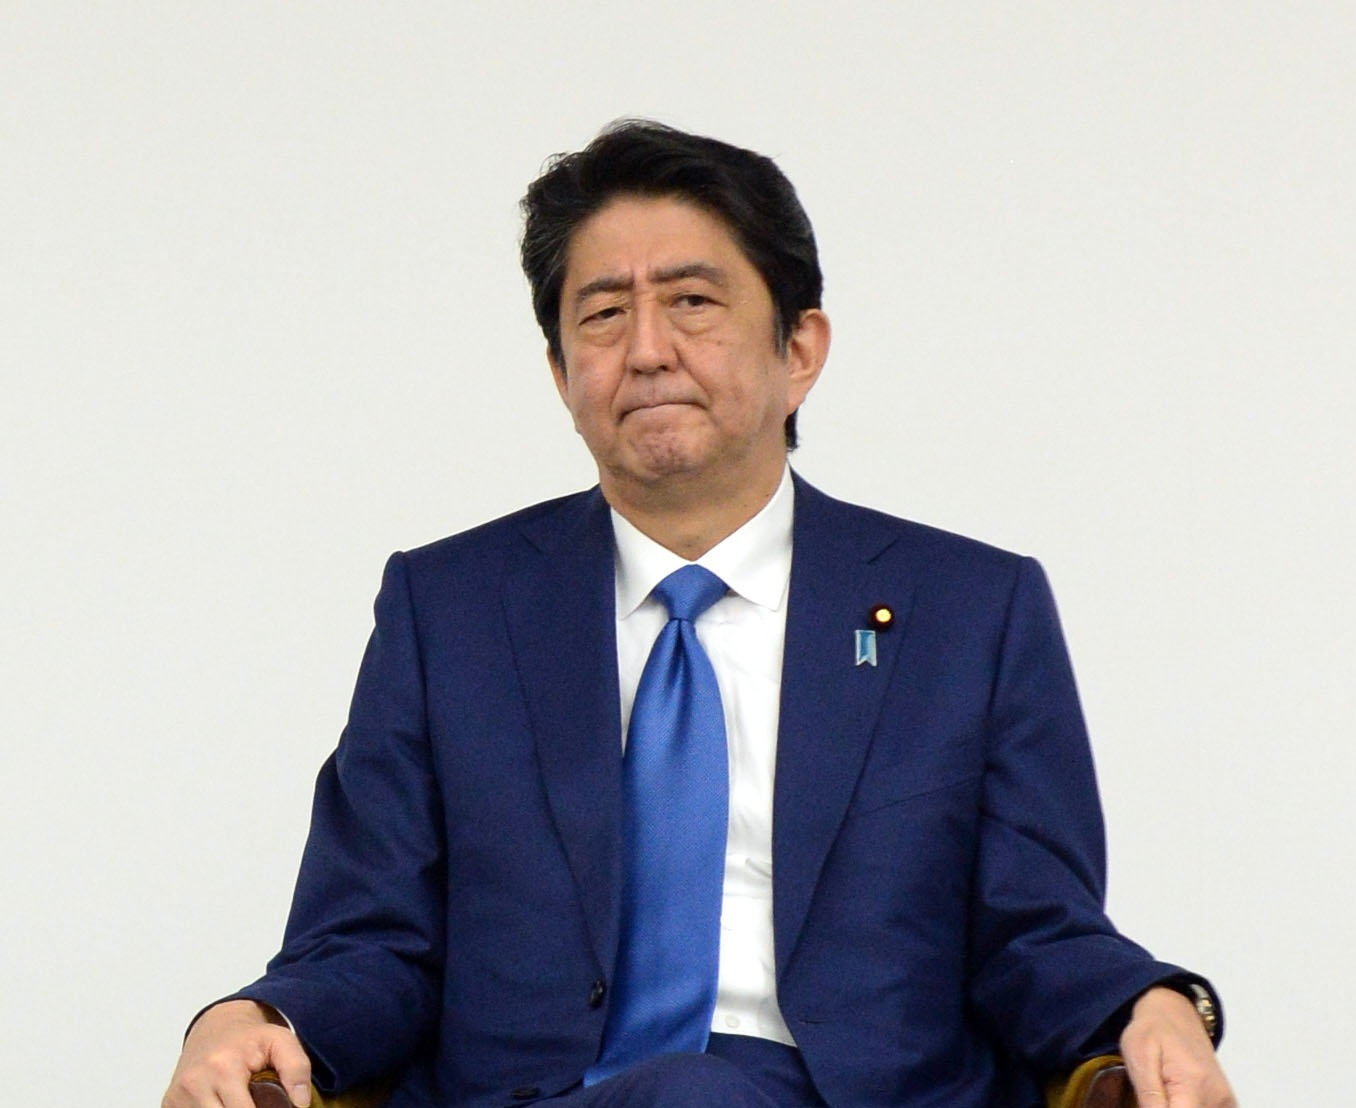 Japan Prime Minister Shinzo Abe. (File Photo: IANS) by .